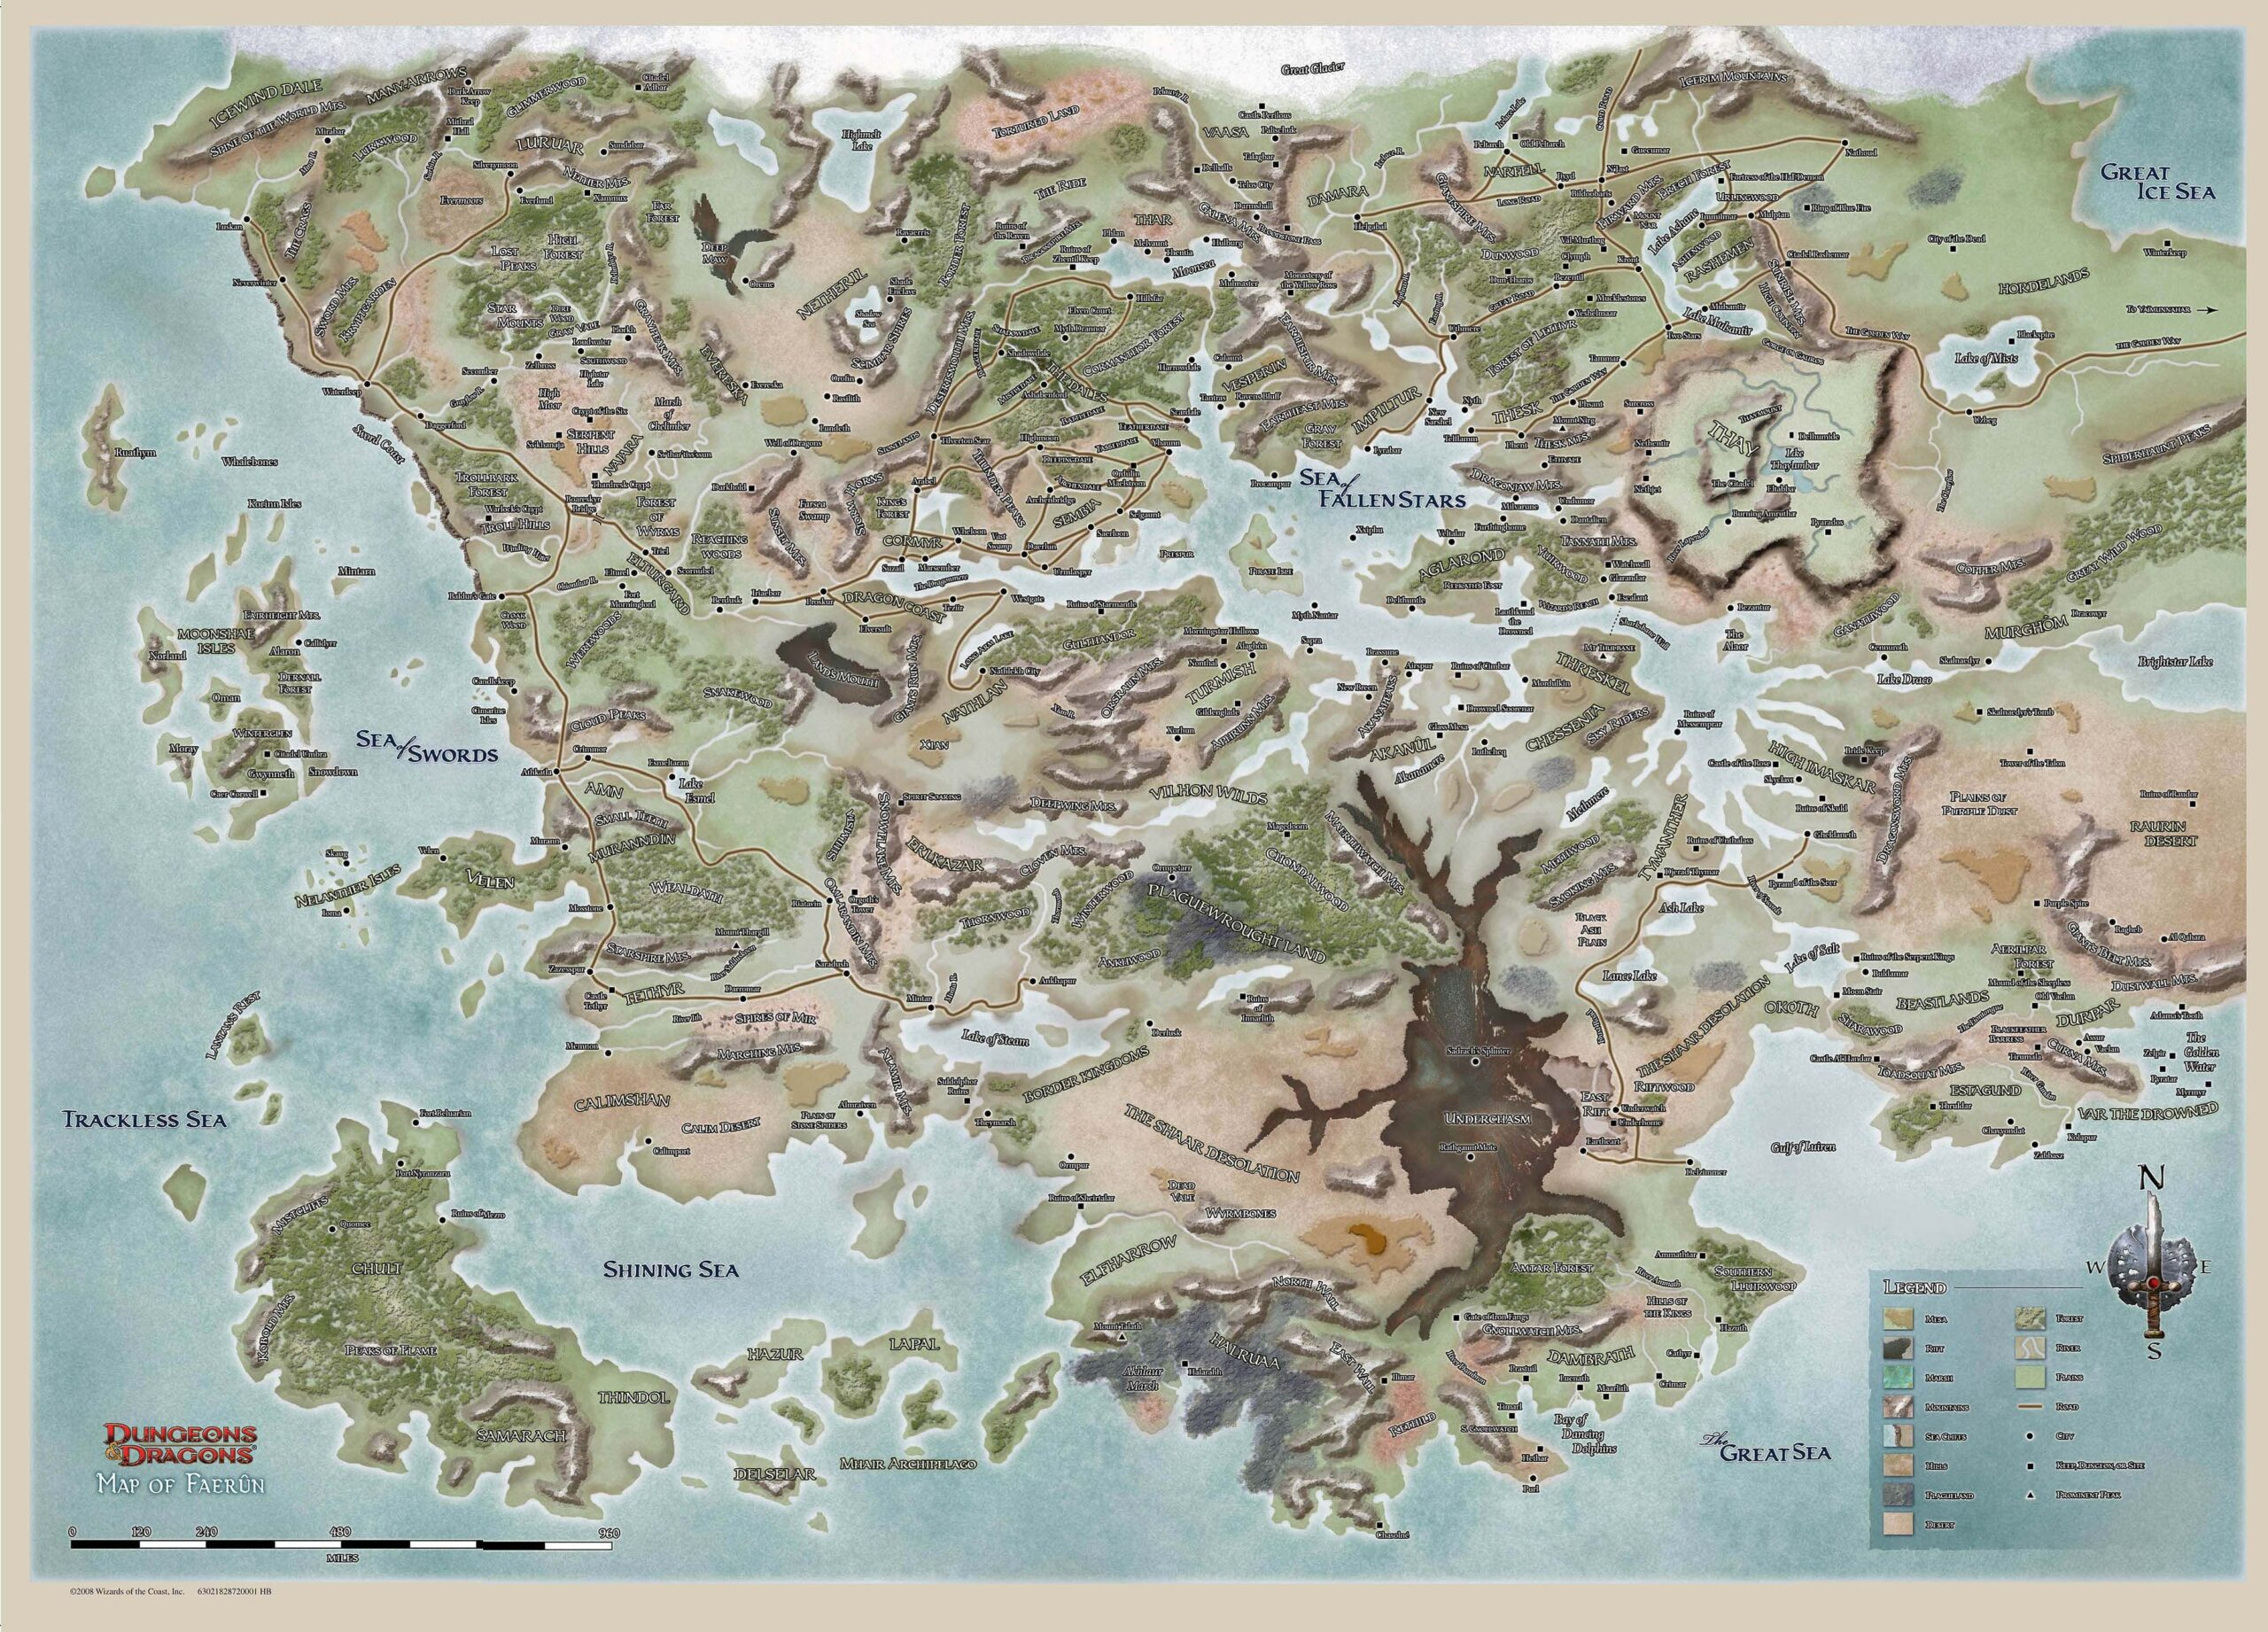 D&D 5e World Map